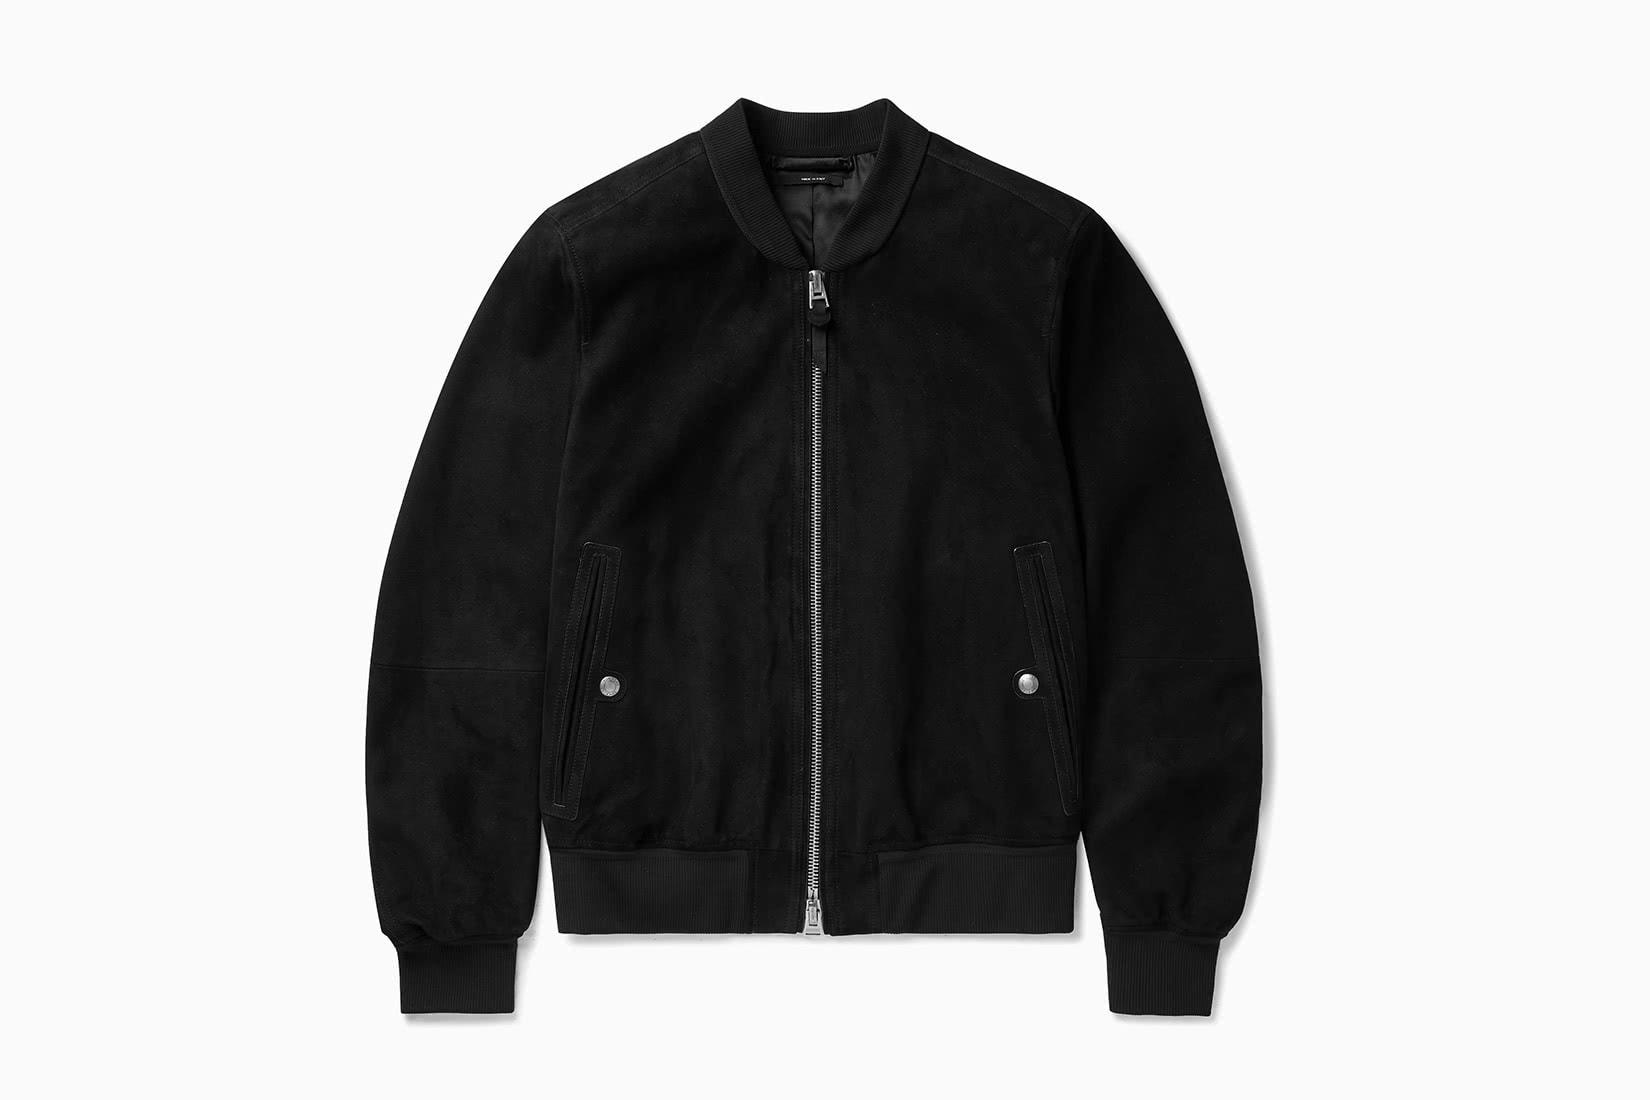 best men bomber jacket designer Tom Ford review - Luxe Digital